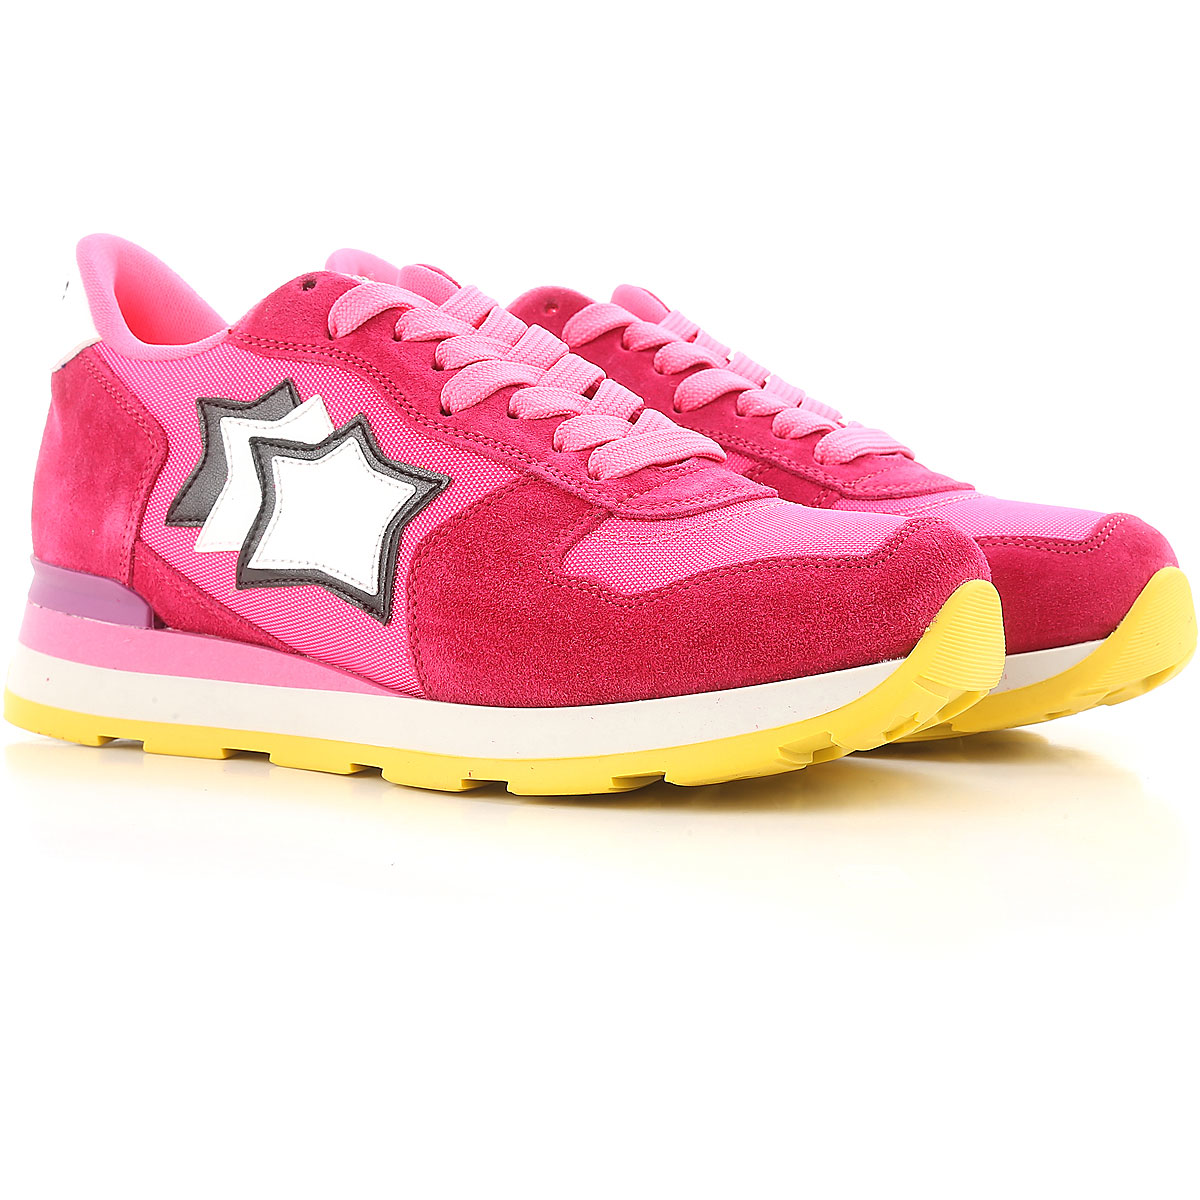 Atlantic Stars Sneakers for Women On Sale, Pink, Suede leather, 2019, 10 6 7 8 9